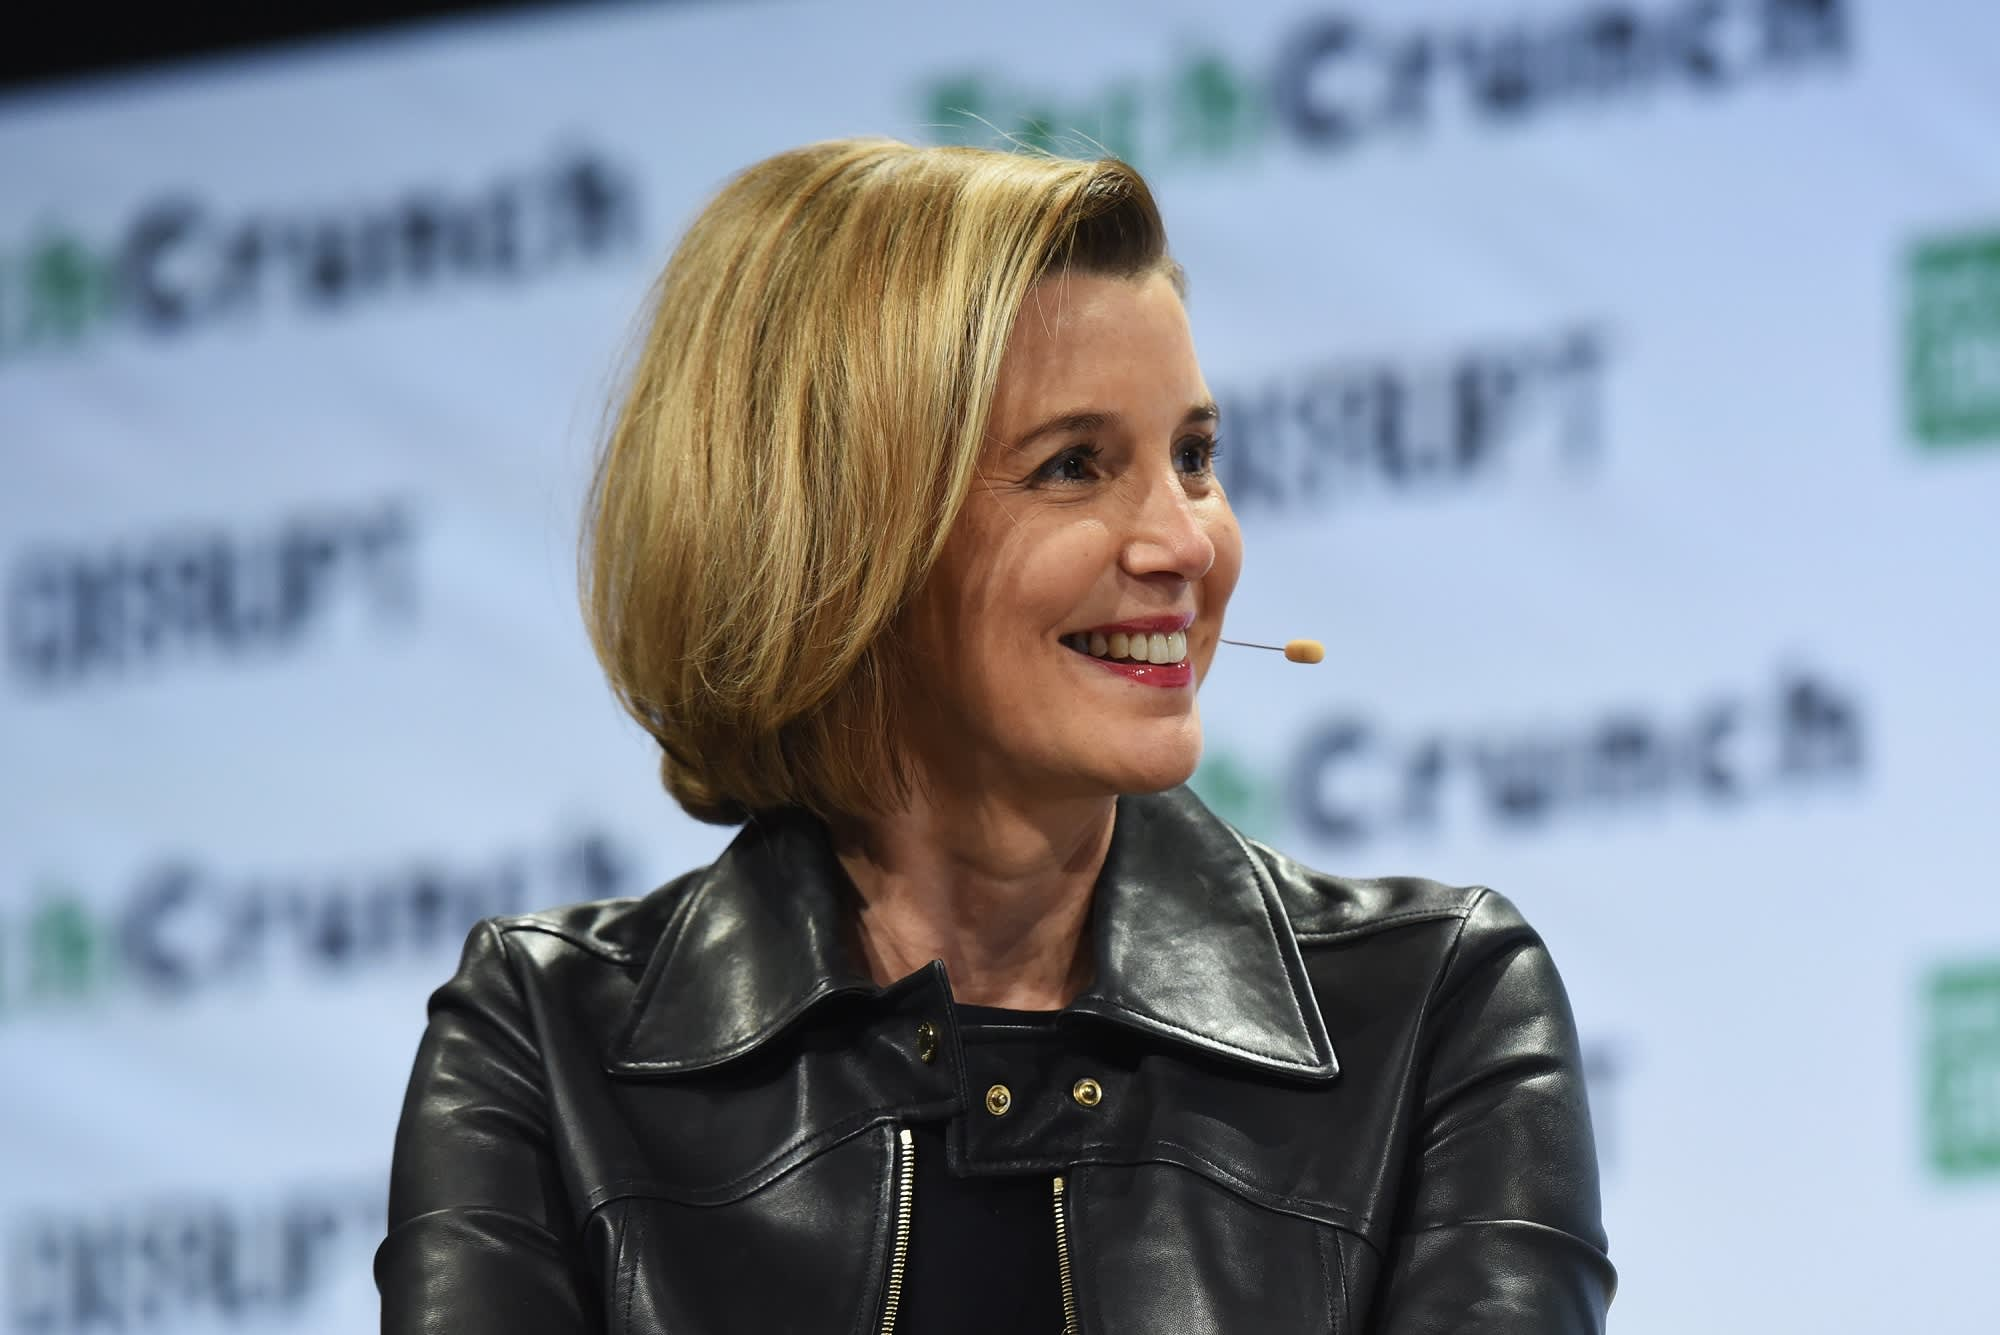 Sallie Krawcheck: The No. 1 investing mistake women make has nothing to do with where they invest